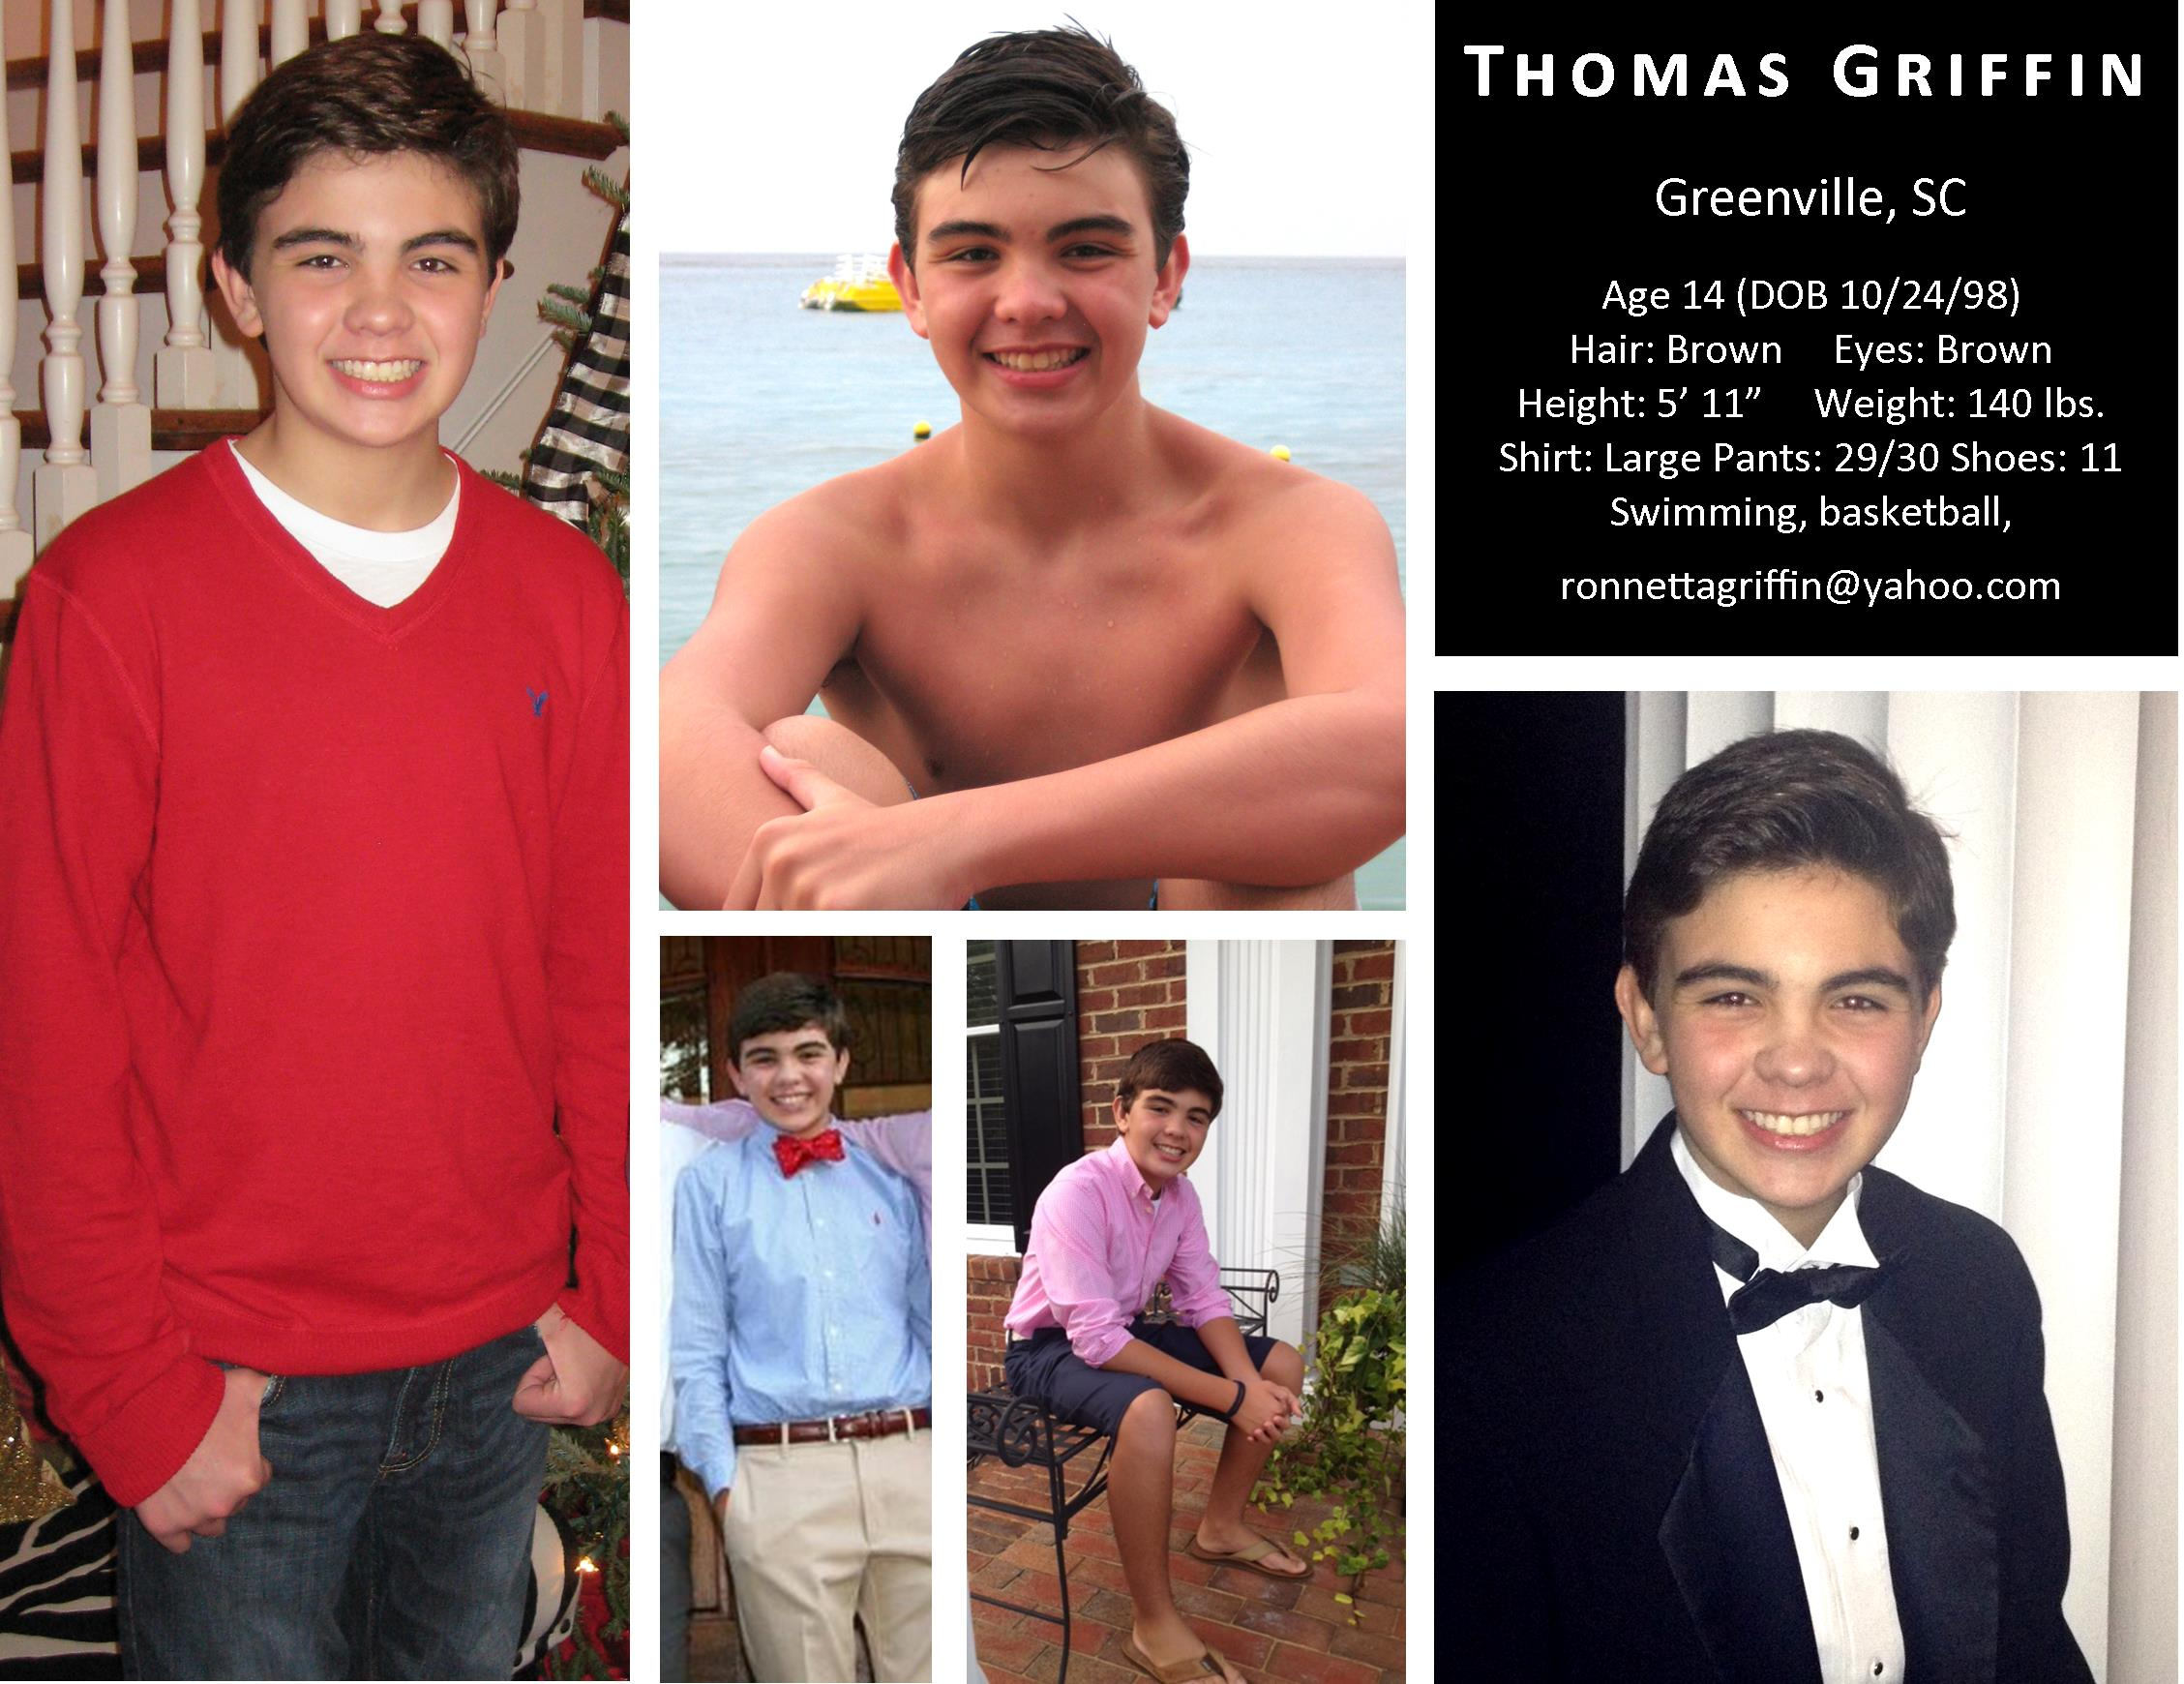 COMP CARD / Thomas